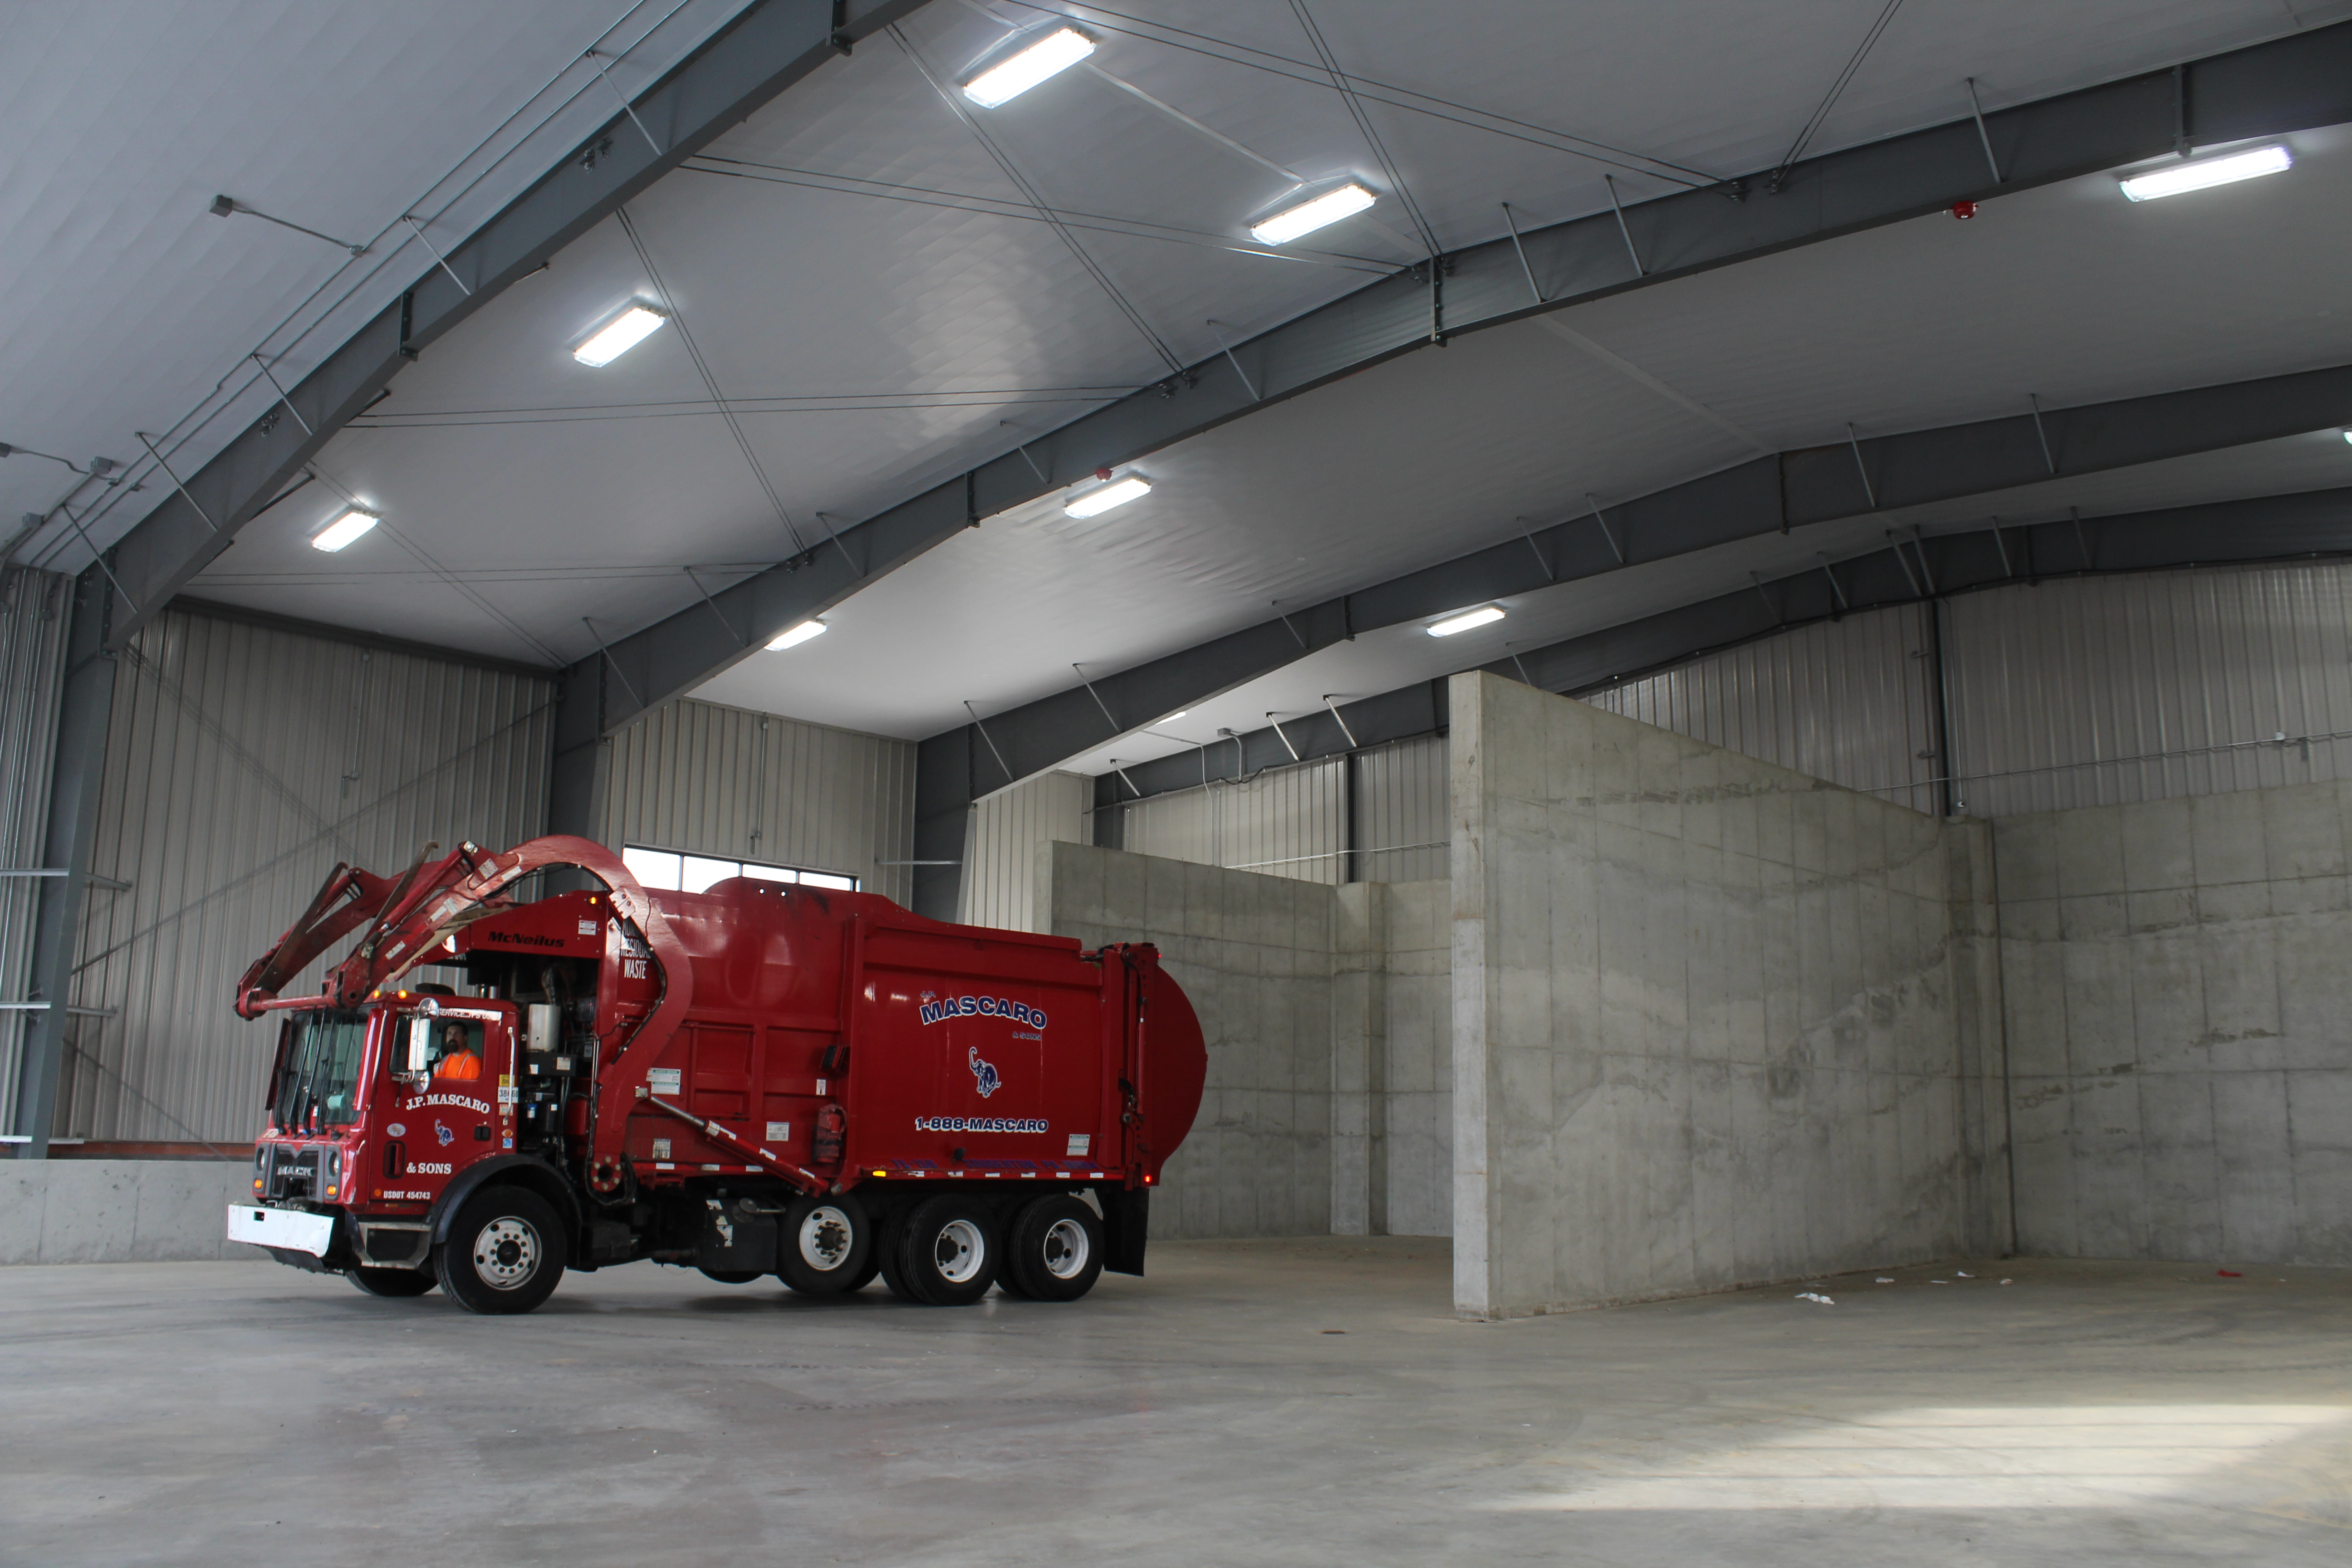 Mascaro opens new transfer station in Franconia Township